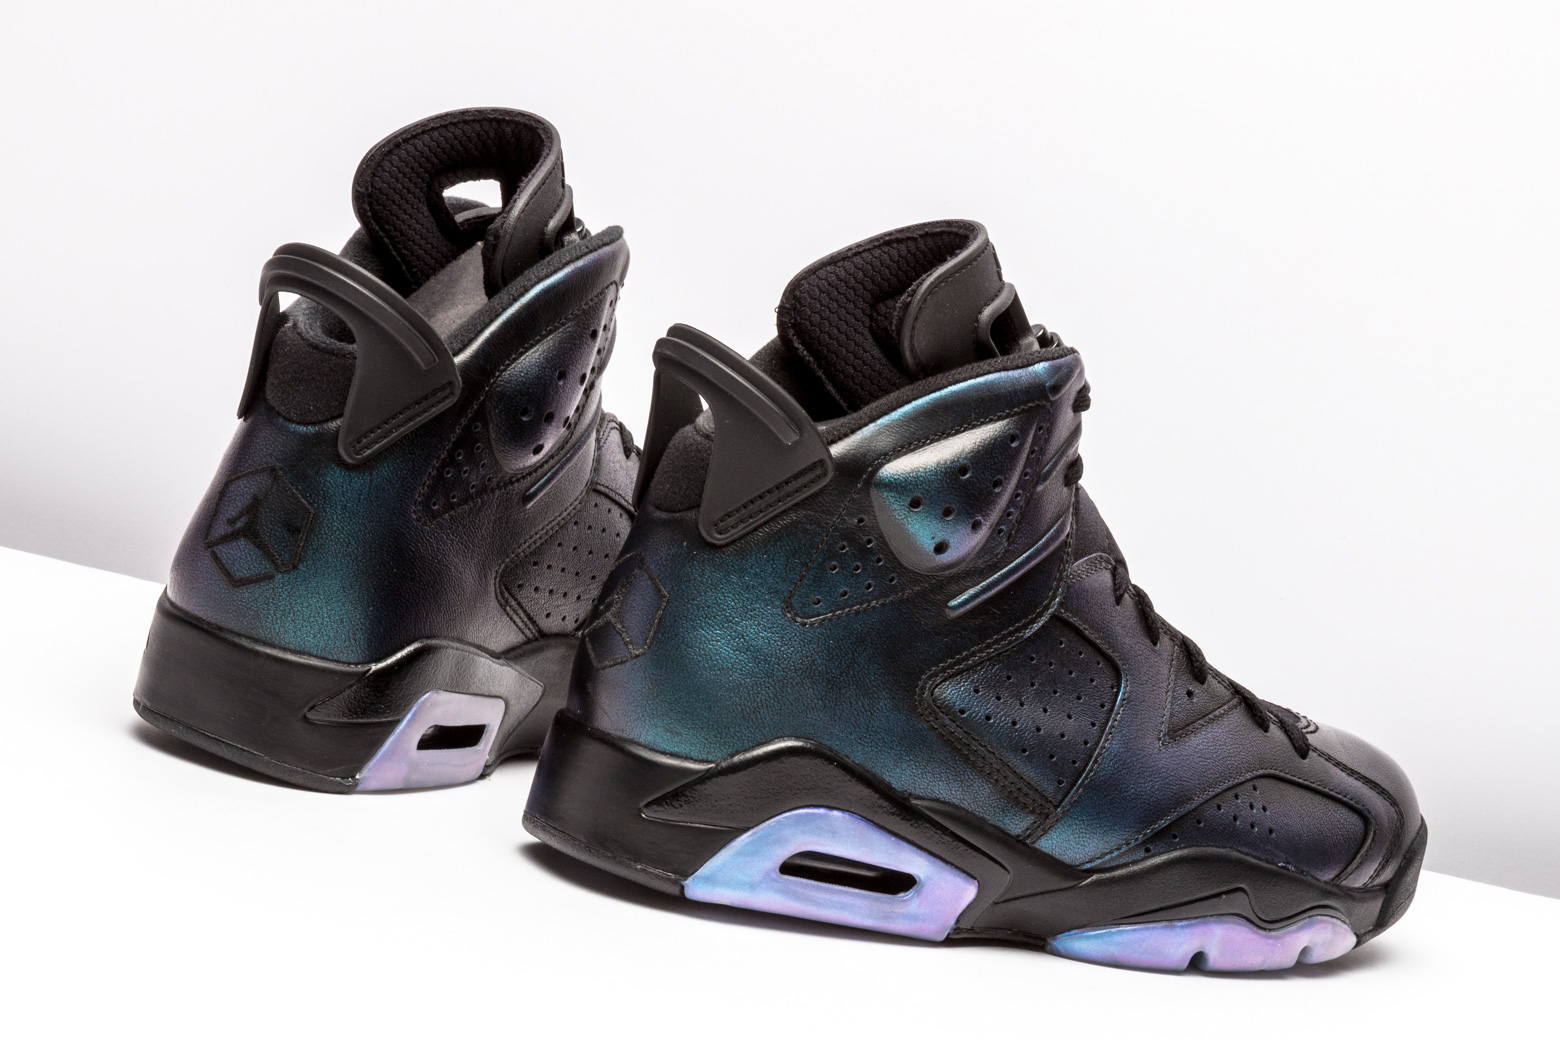 bfb9615537b04d Color  Black Black-White Style  907961-015. Release Date  02 17 2017.  Price   225.00. air jordan 6 all star. Be Sociable